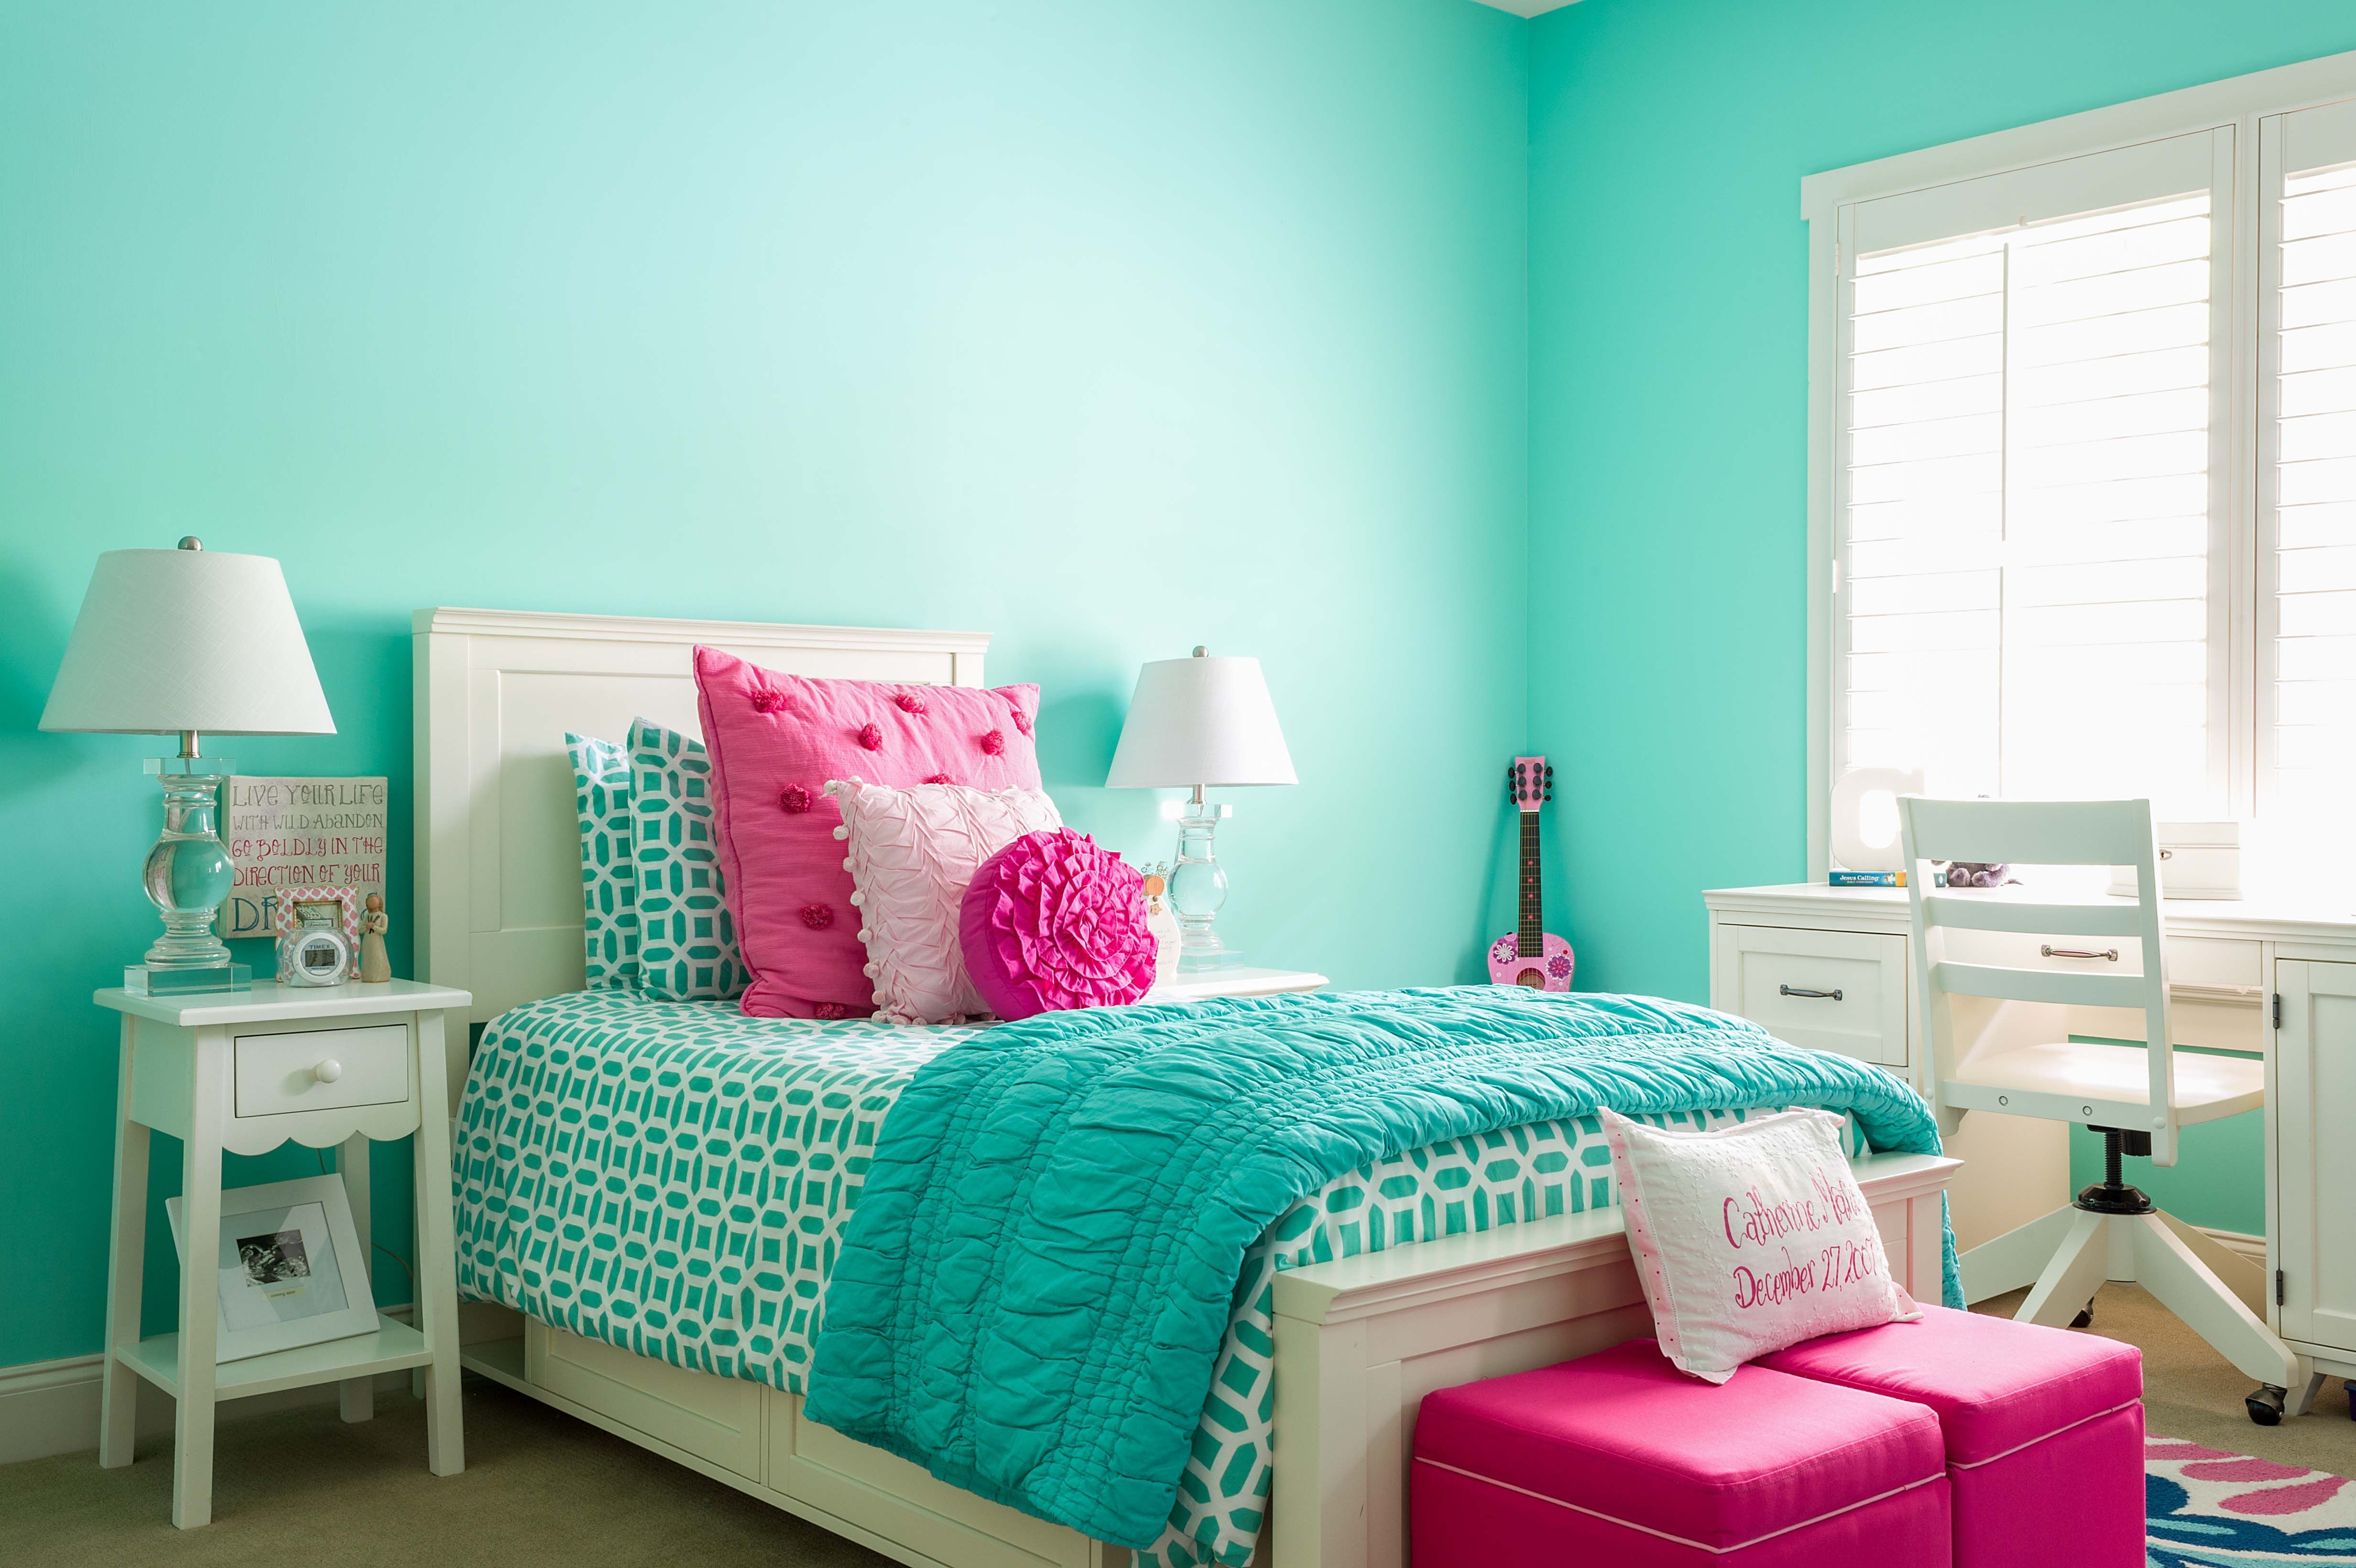 22+ Teal and pink bedroom ideas in 2021